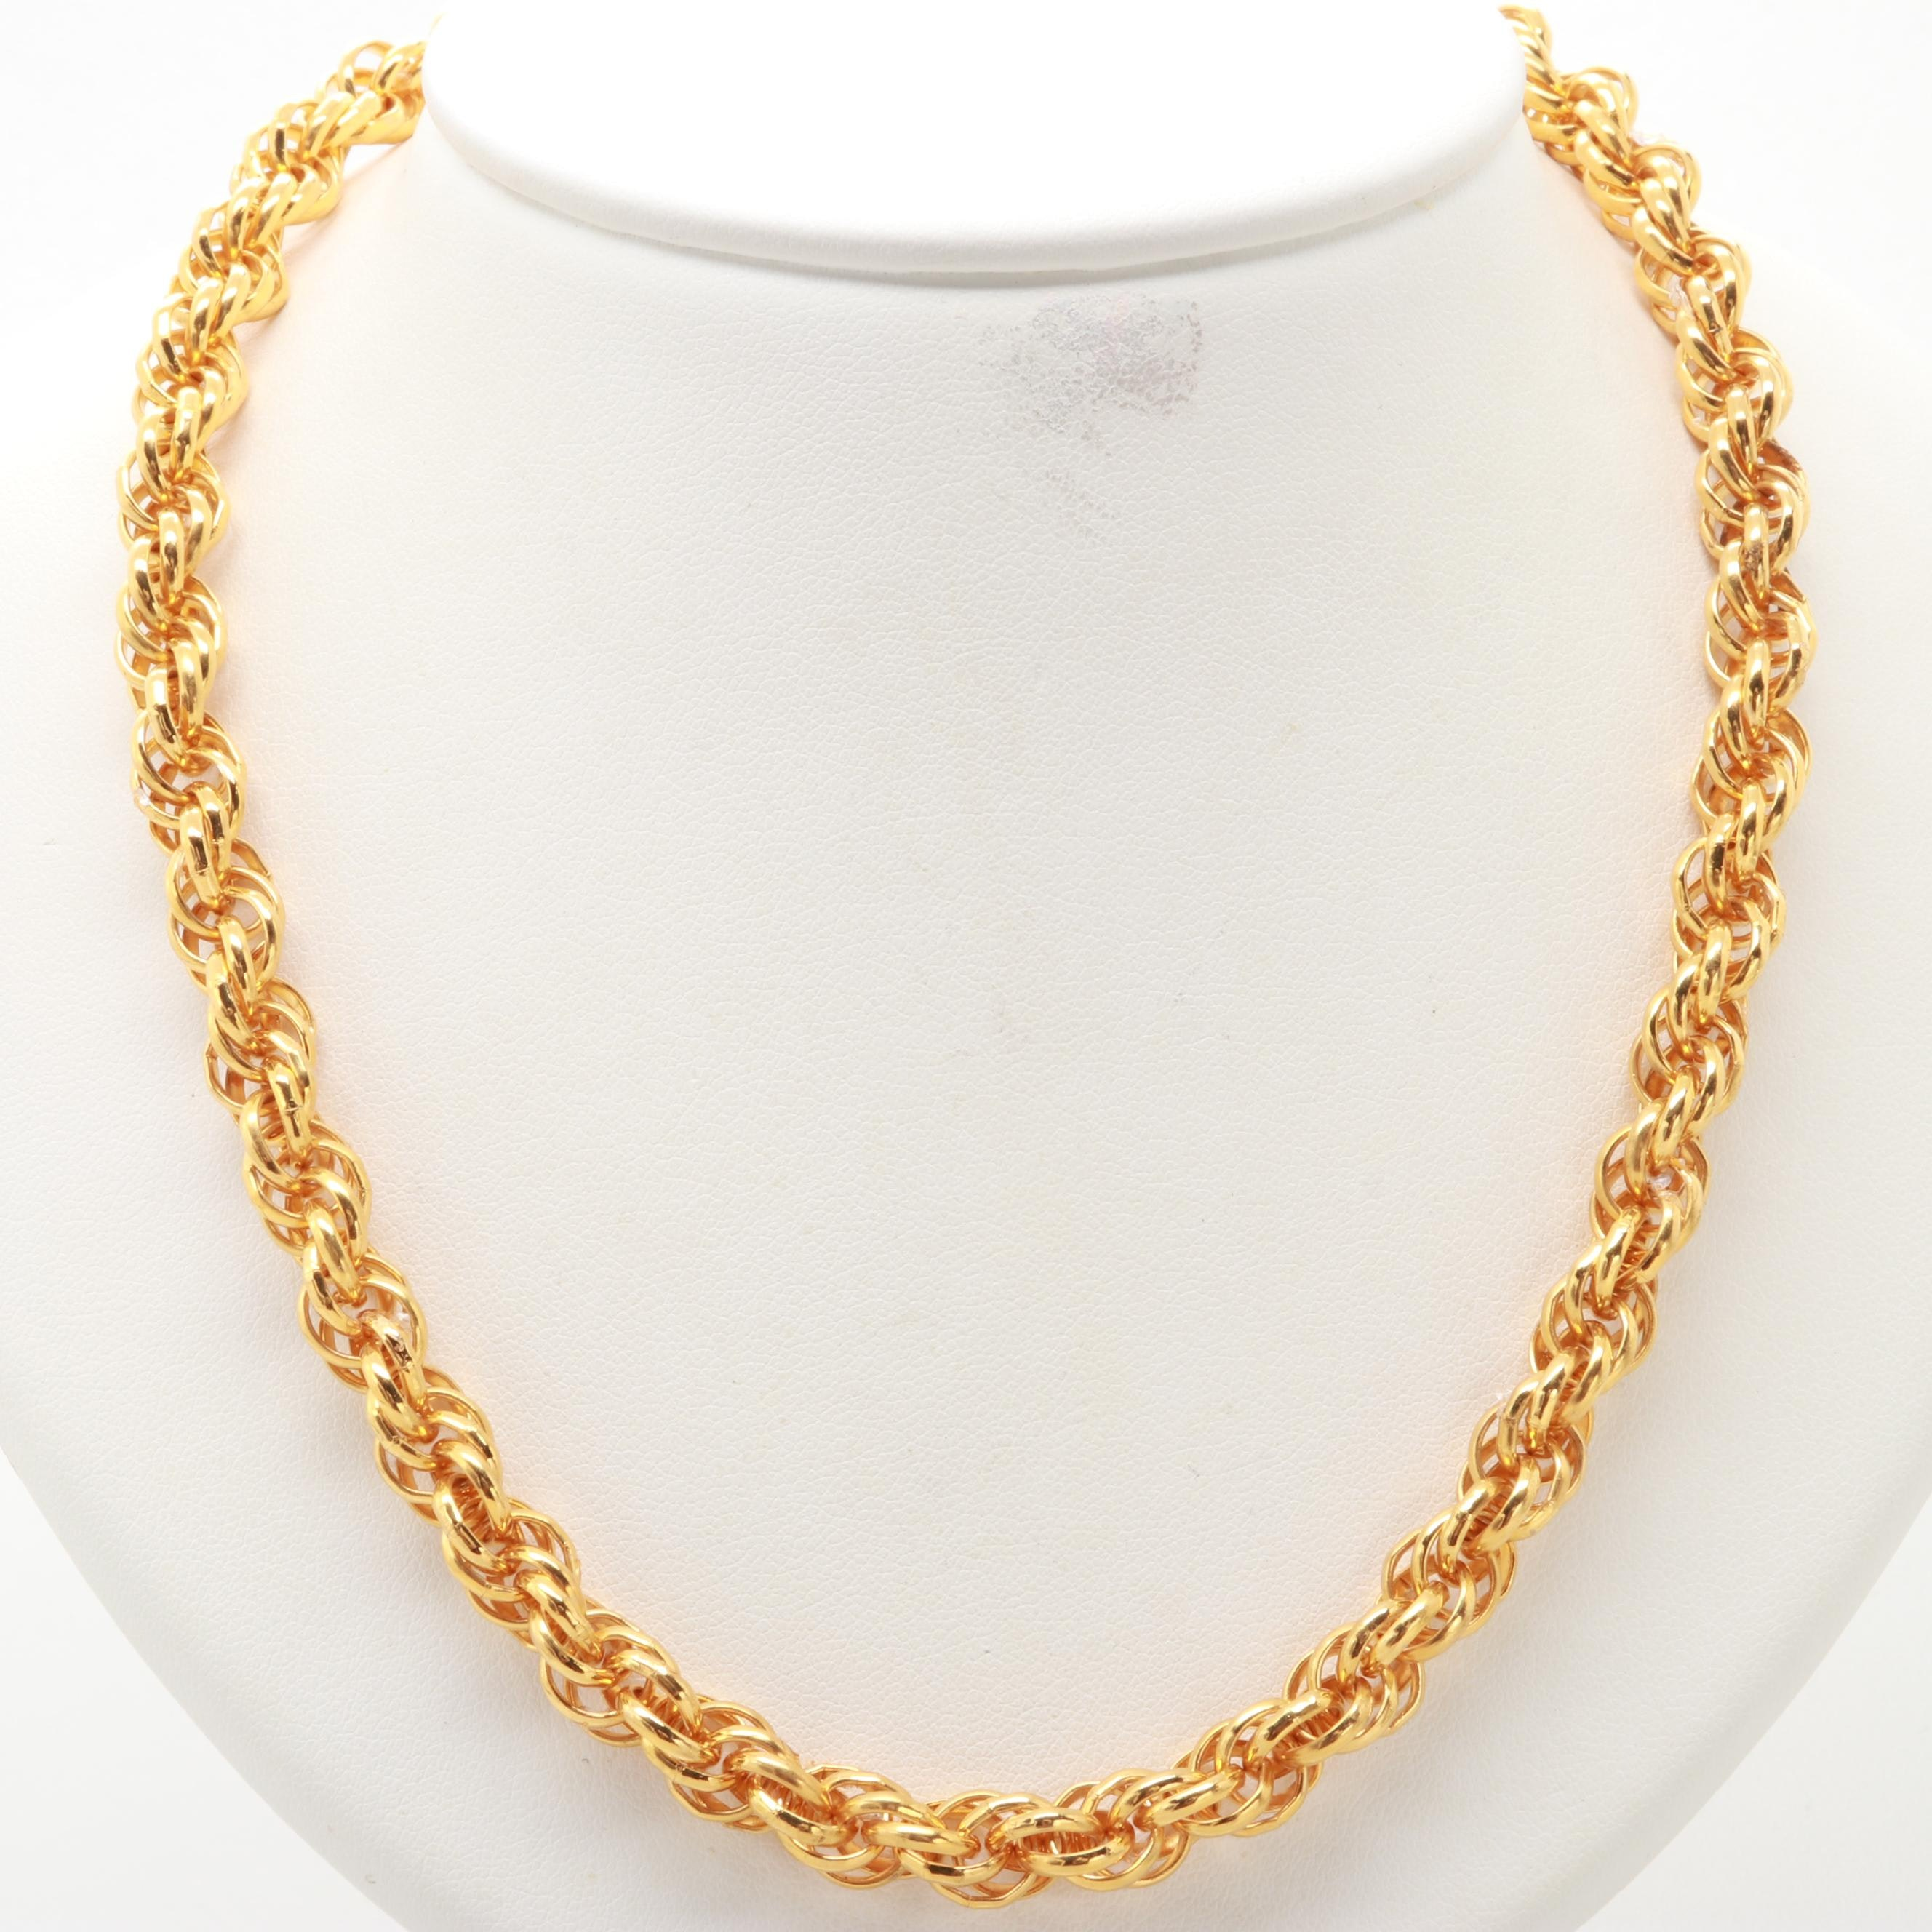 Gold Tone Twisted Rope Chain Link Necklace